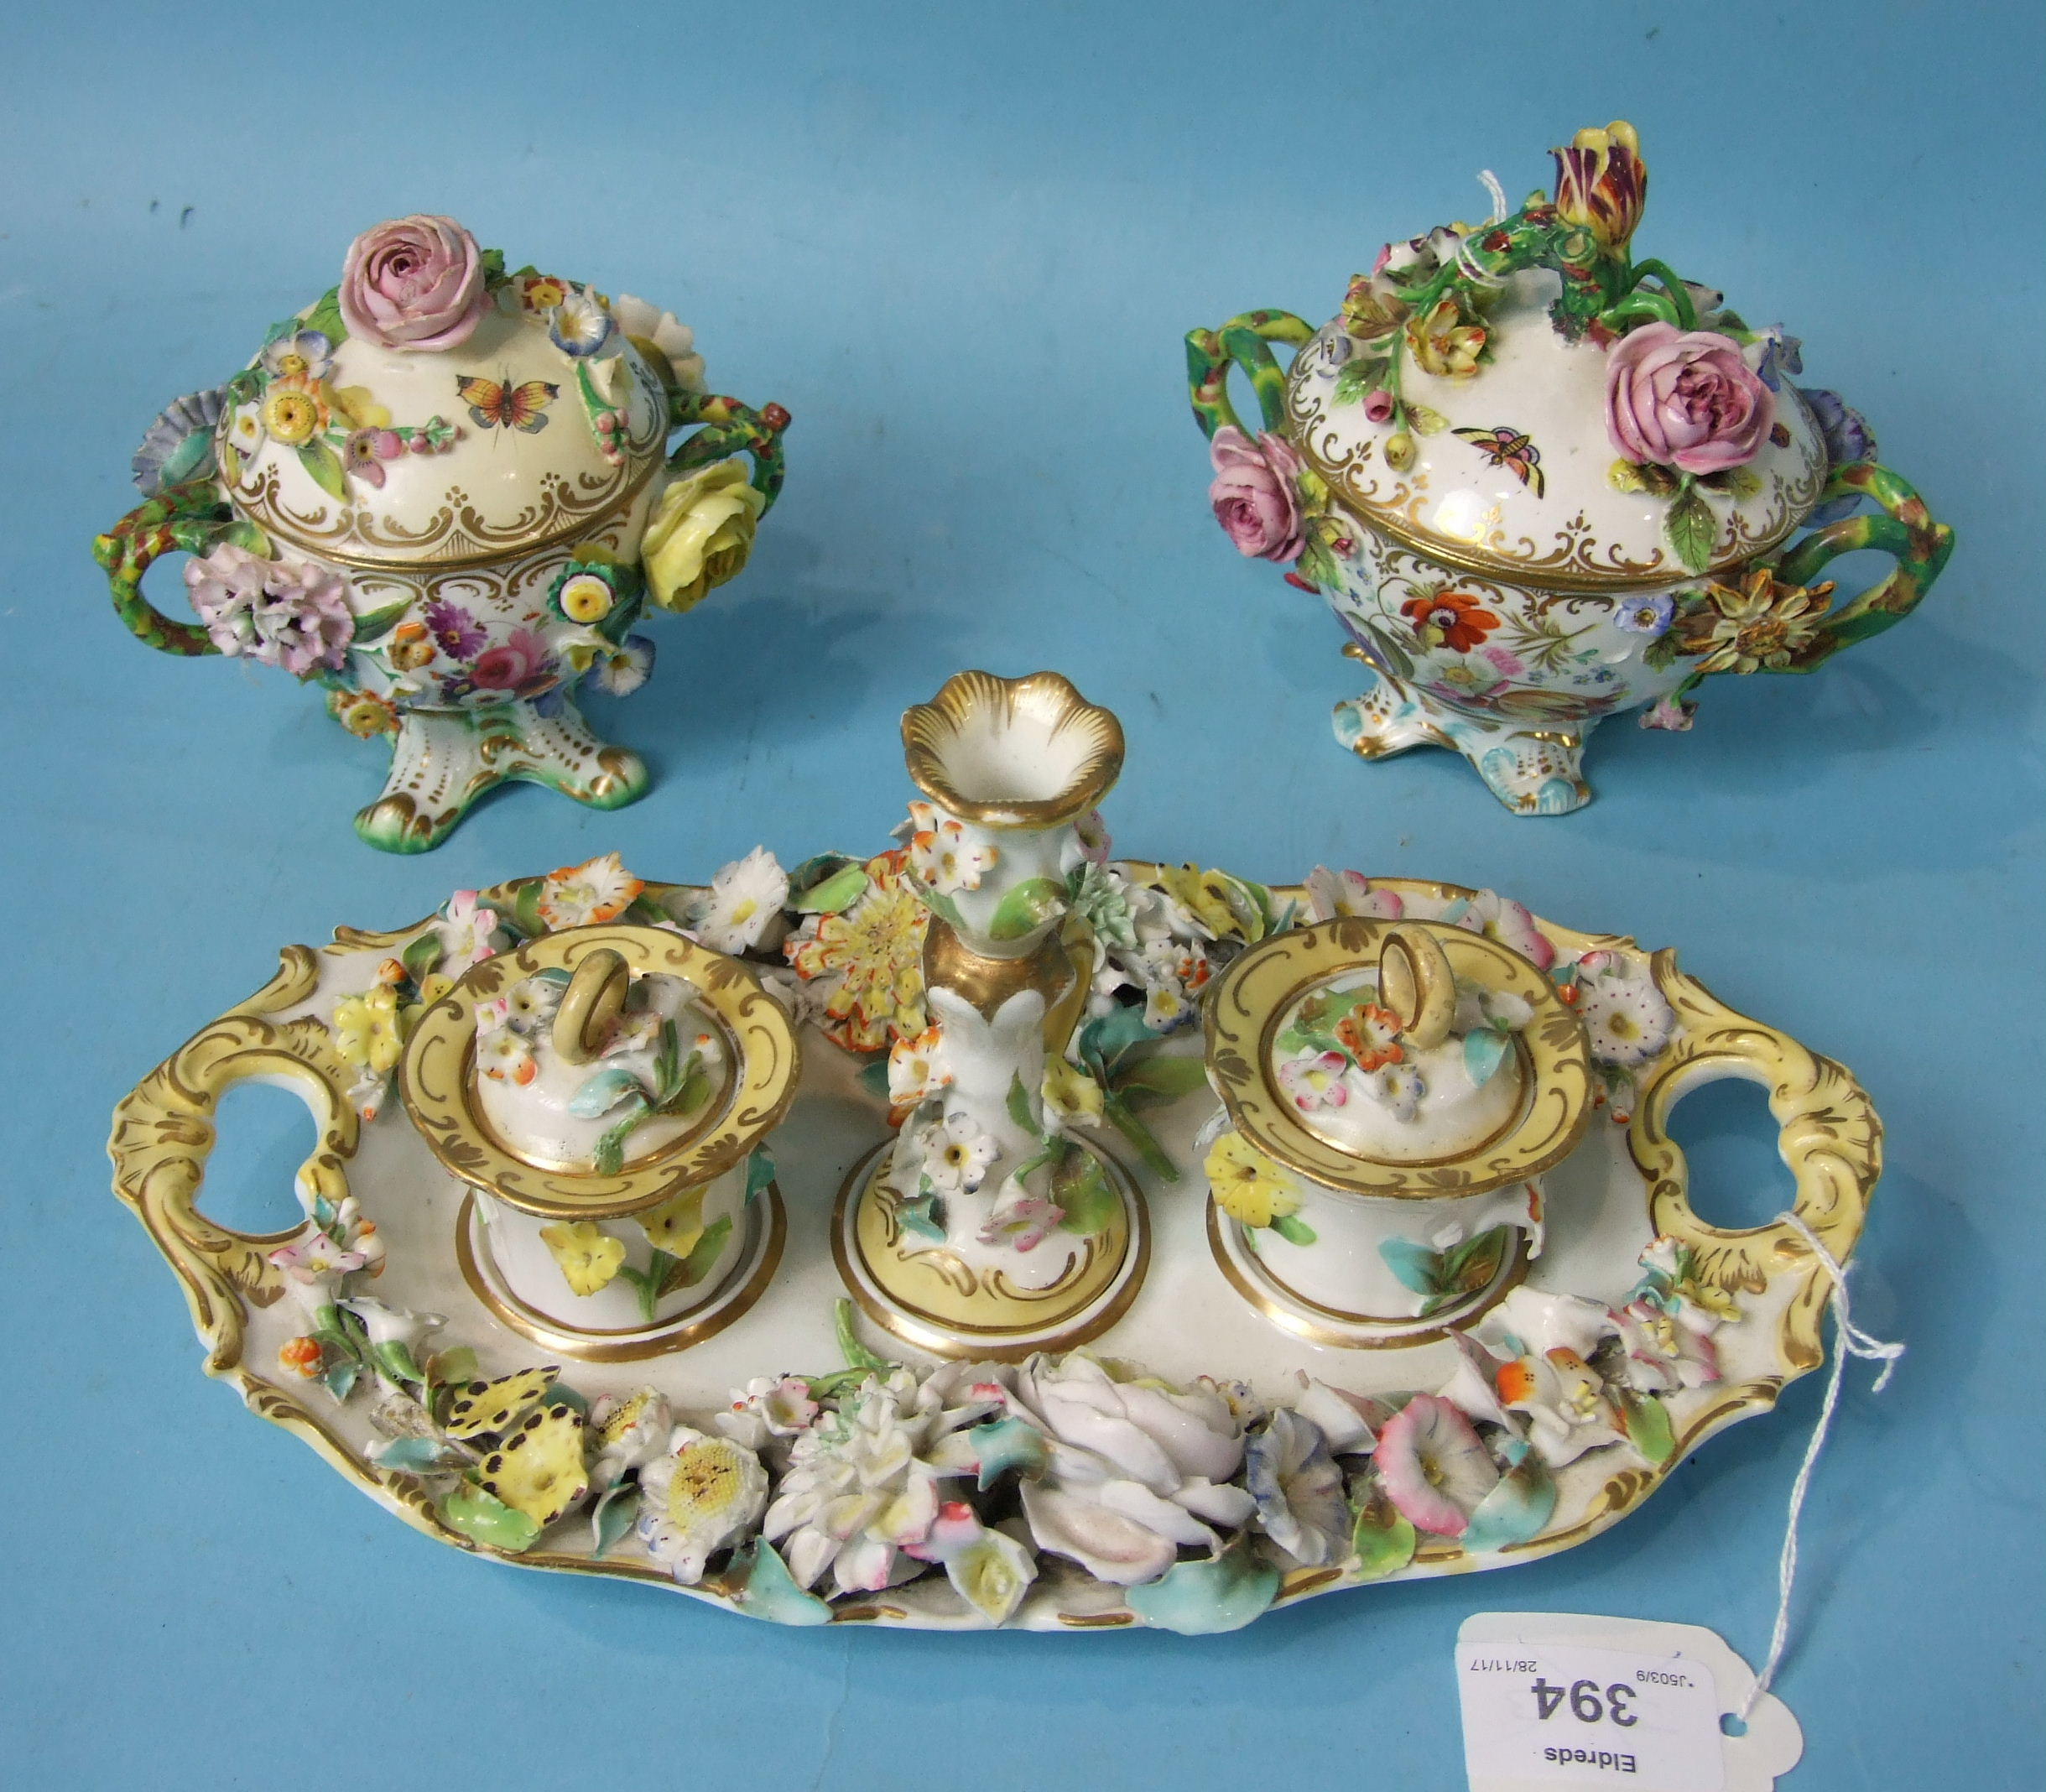 Lot 394 - Two mid-19th century Coalport pot pourri vases and covers painted and encrusted with flowers, on